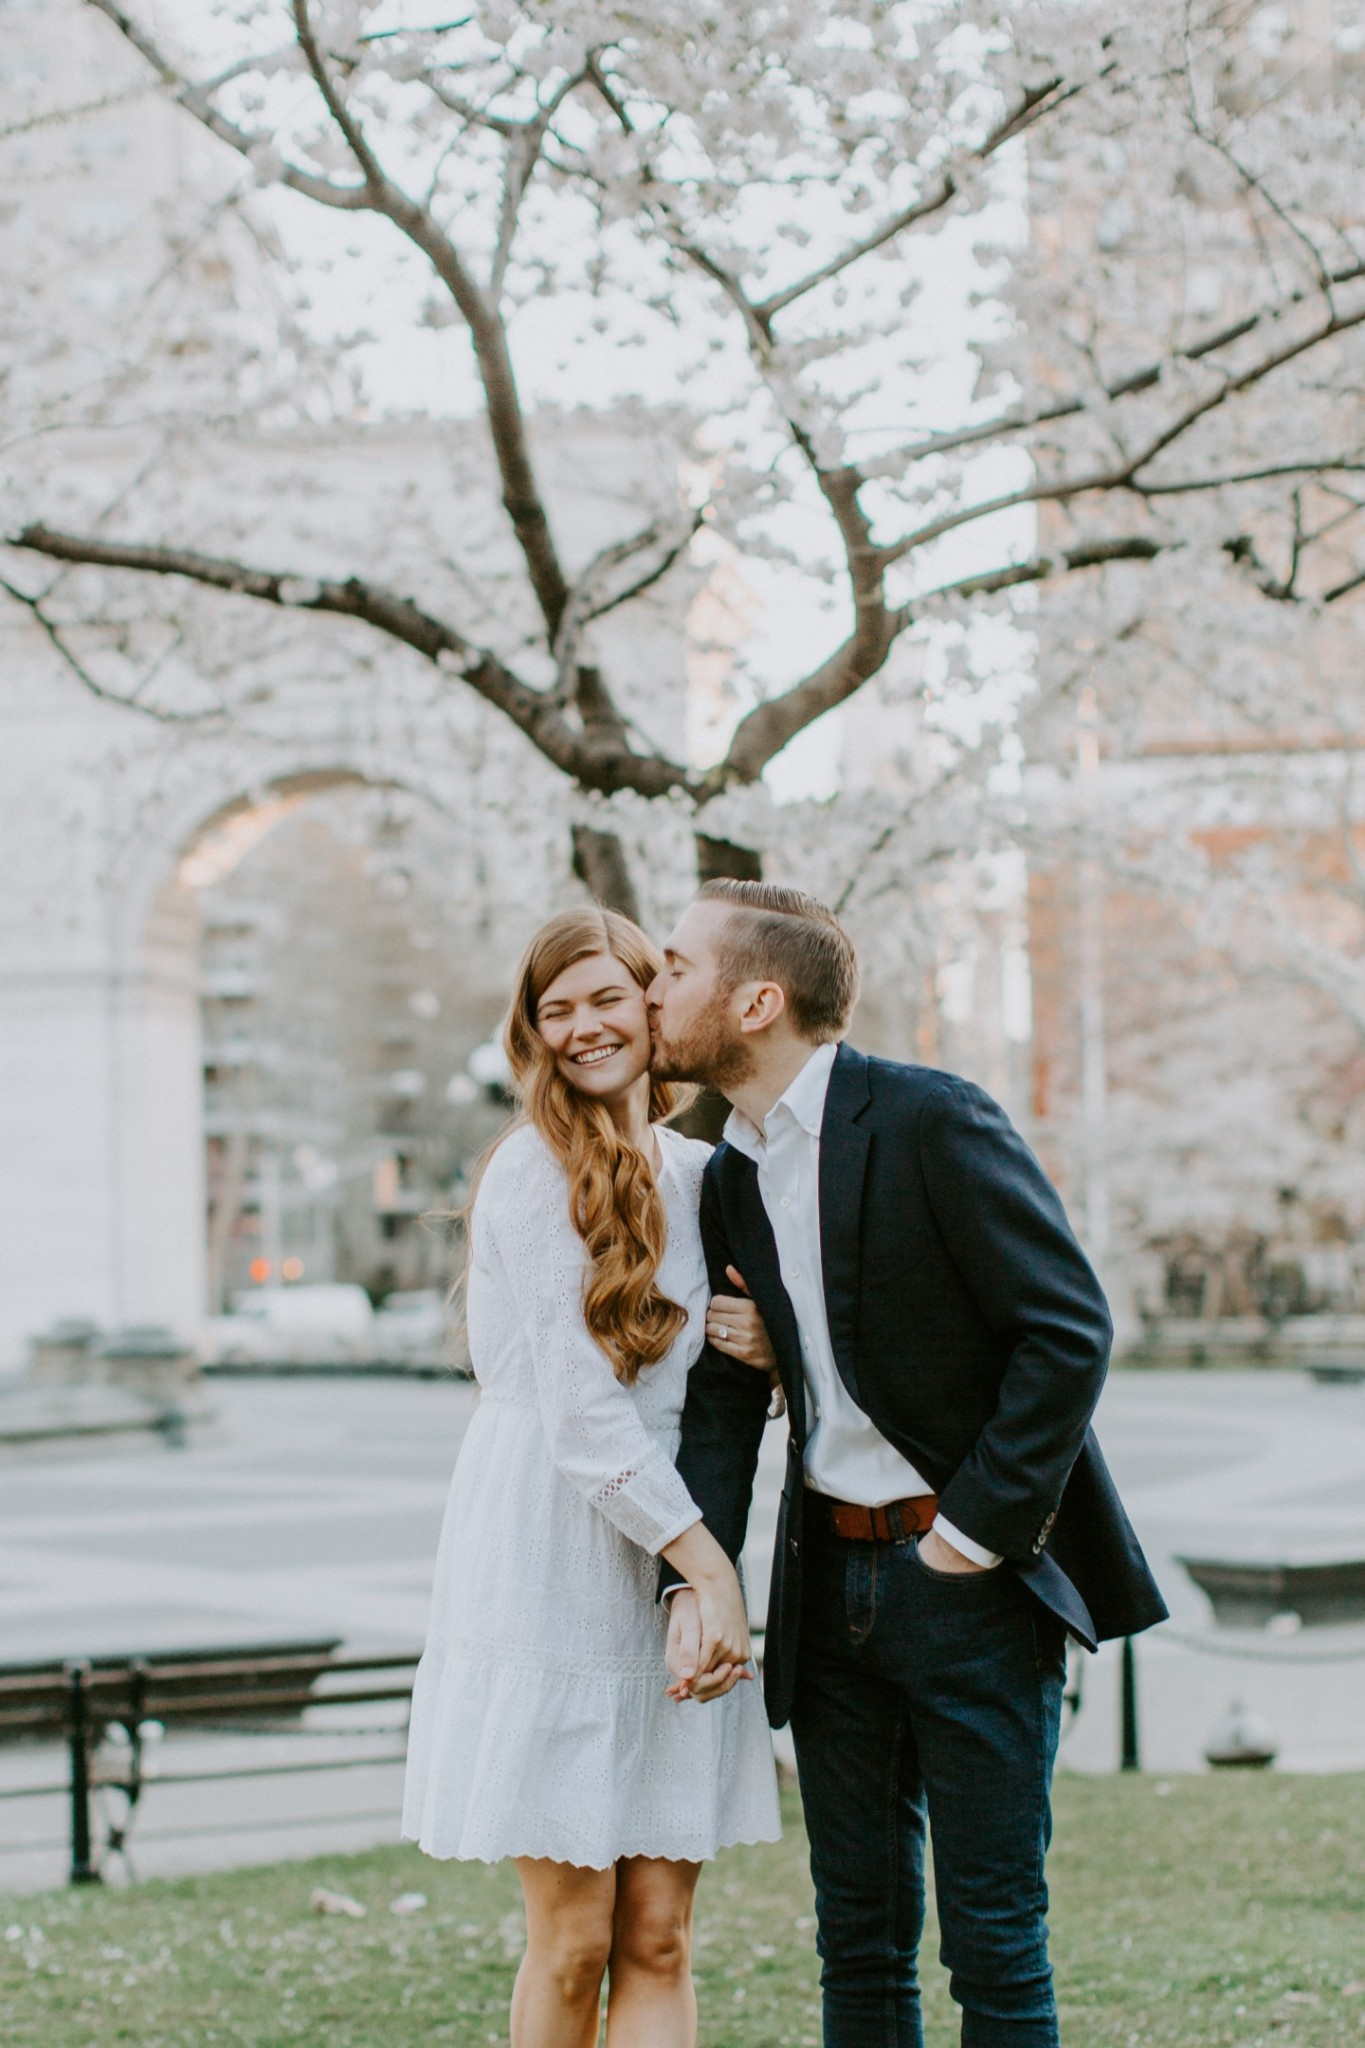 Mollie Moore shares a few engagement photos shot in NYC  | Top London and US life and style blogger, Mollie Moore shares her 2018 year in review: engagement pictures shot in NYC